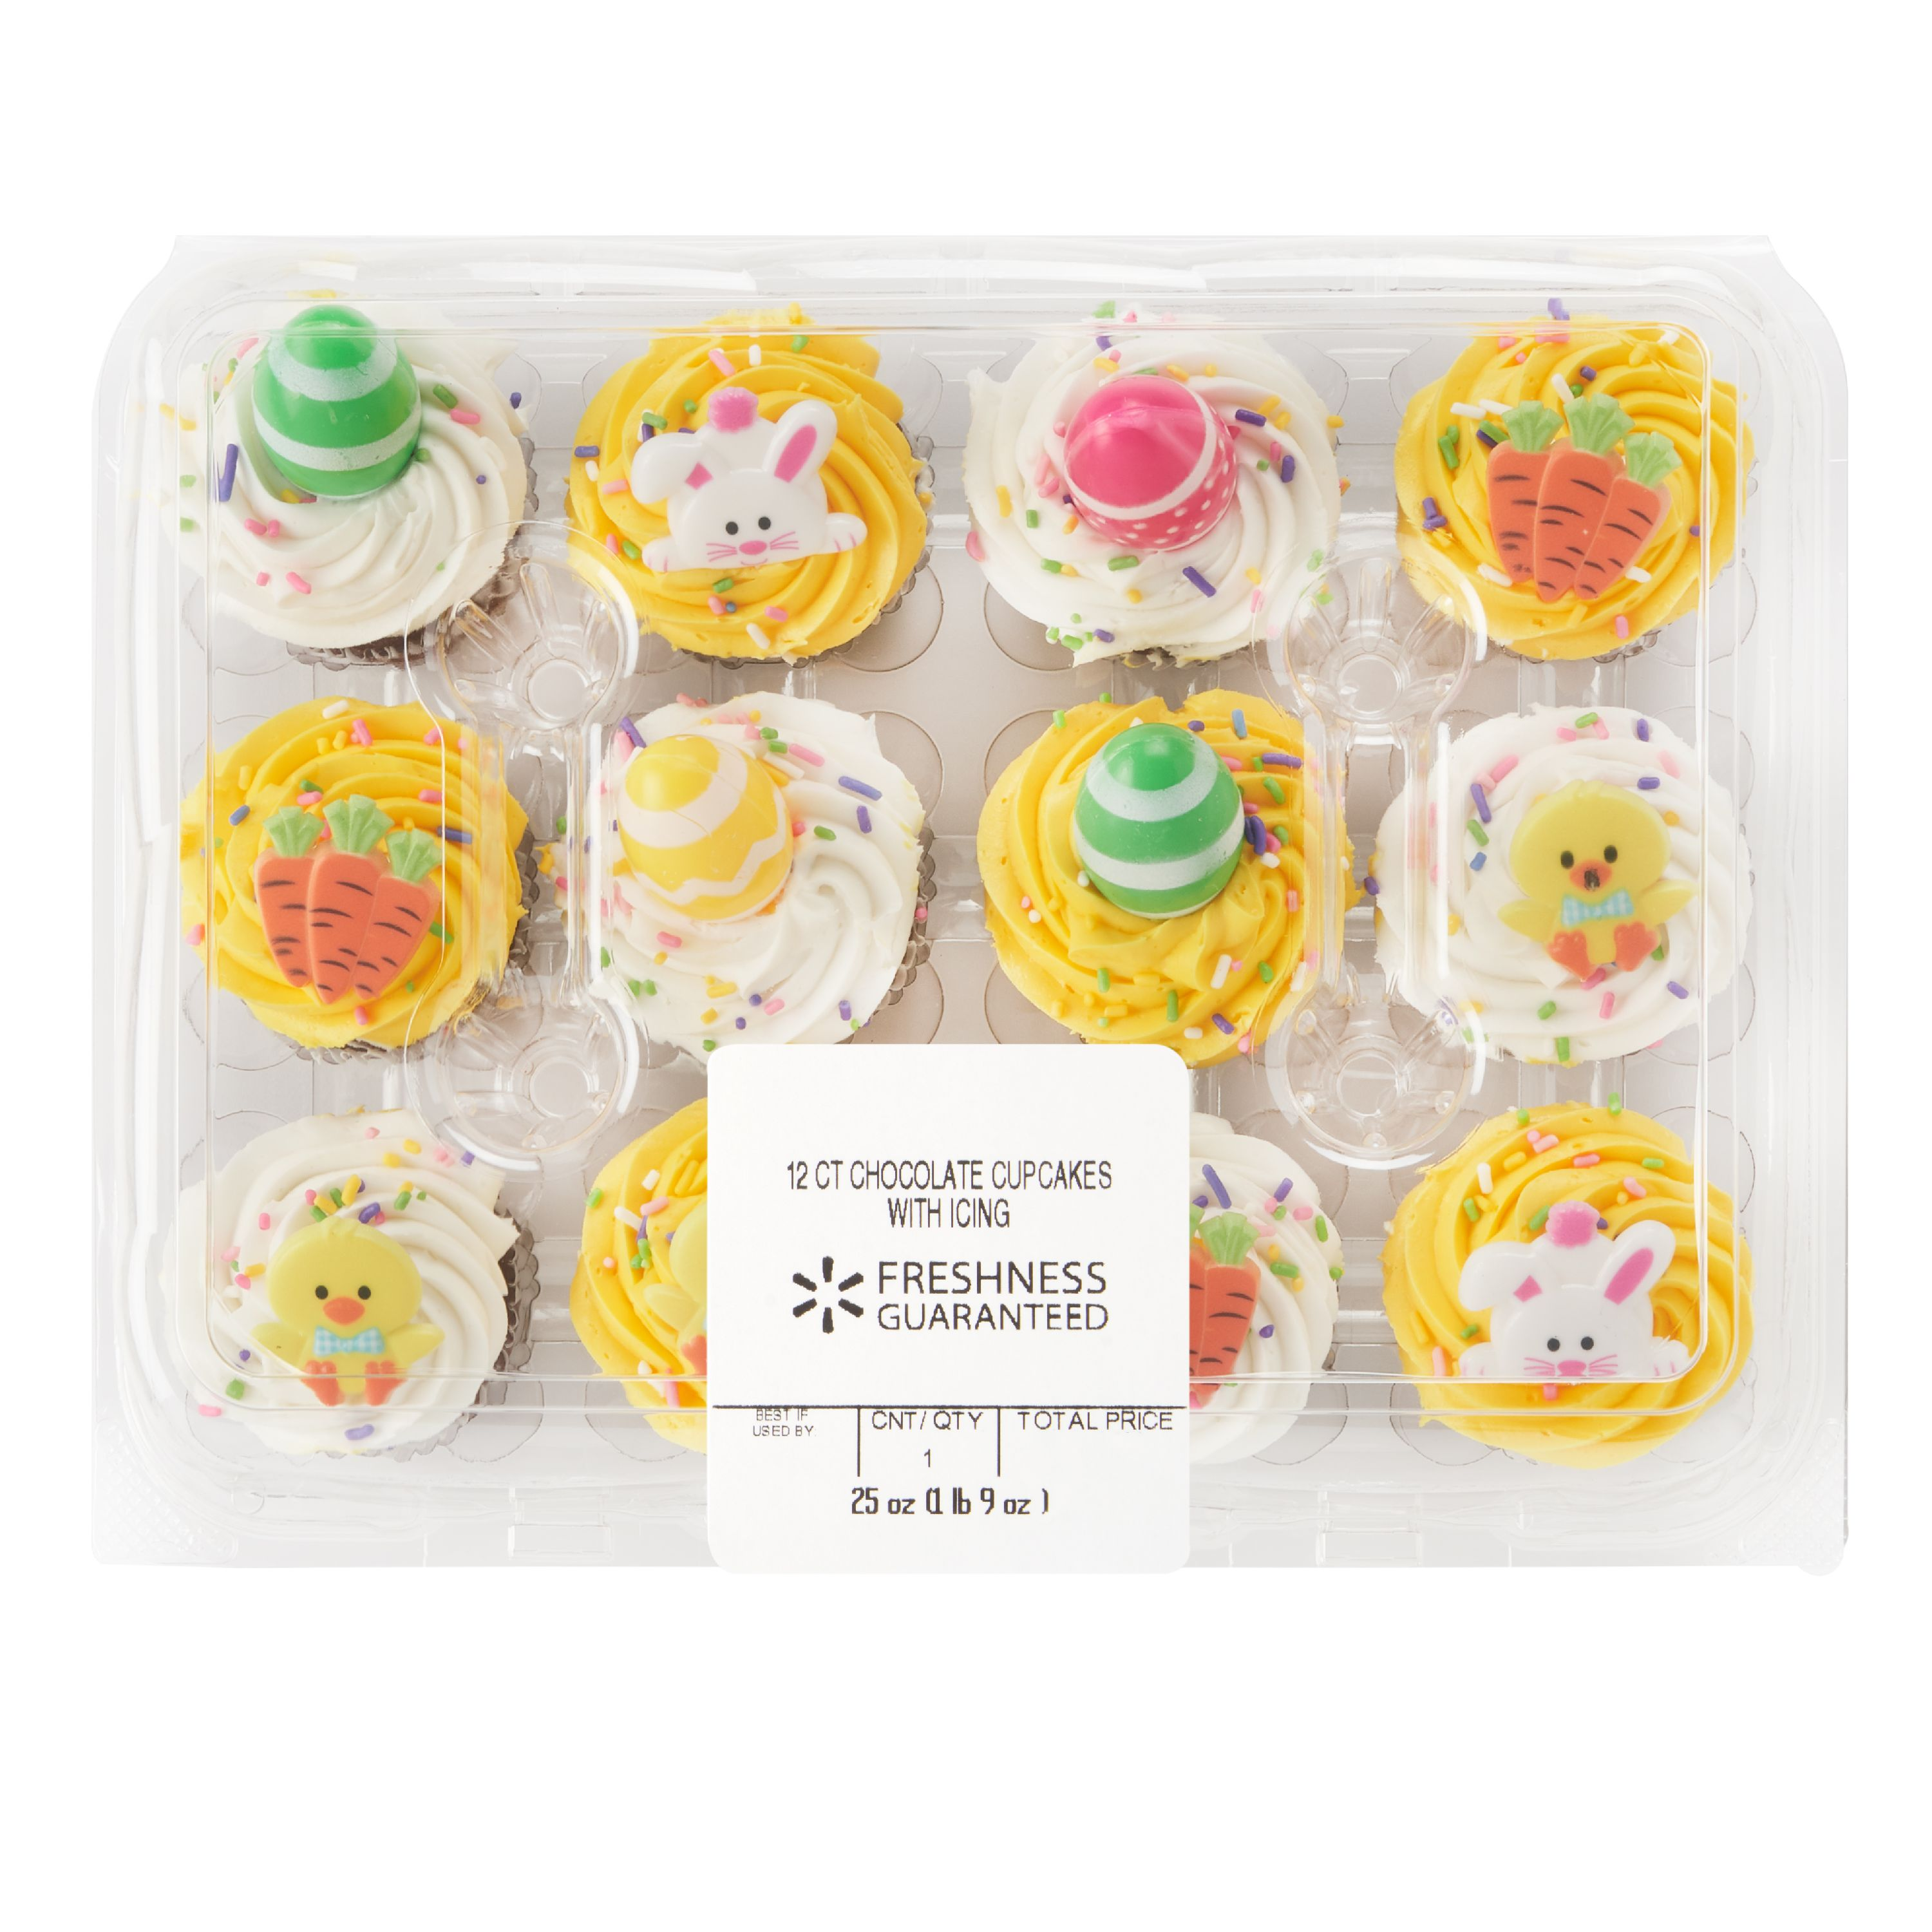 The Bakery At Walmart Chocolate Cupcakes 12 Ct